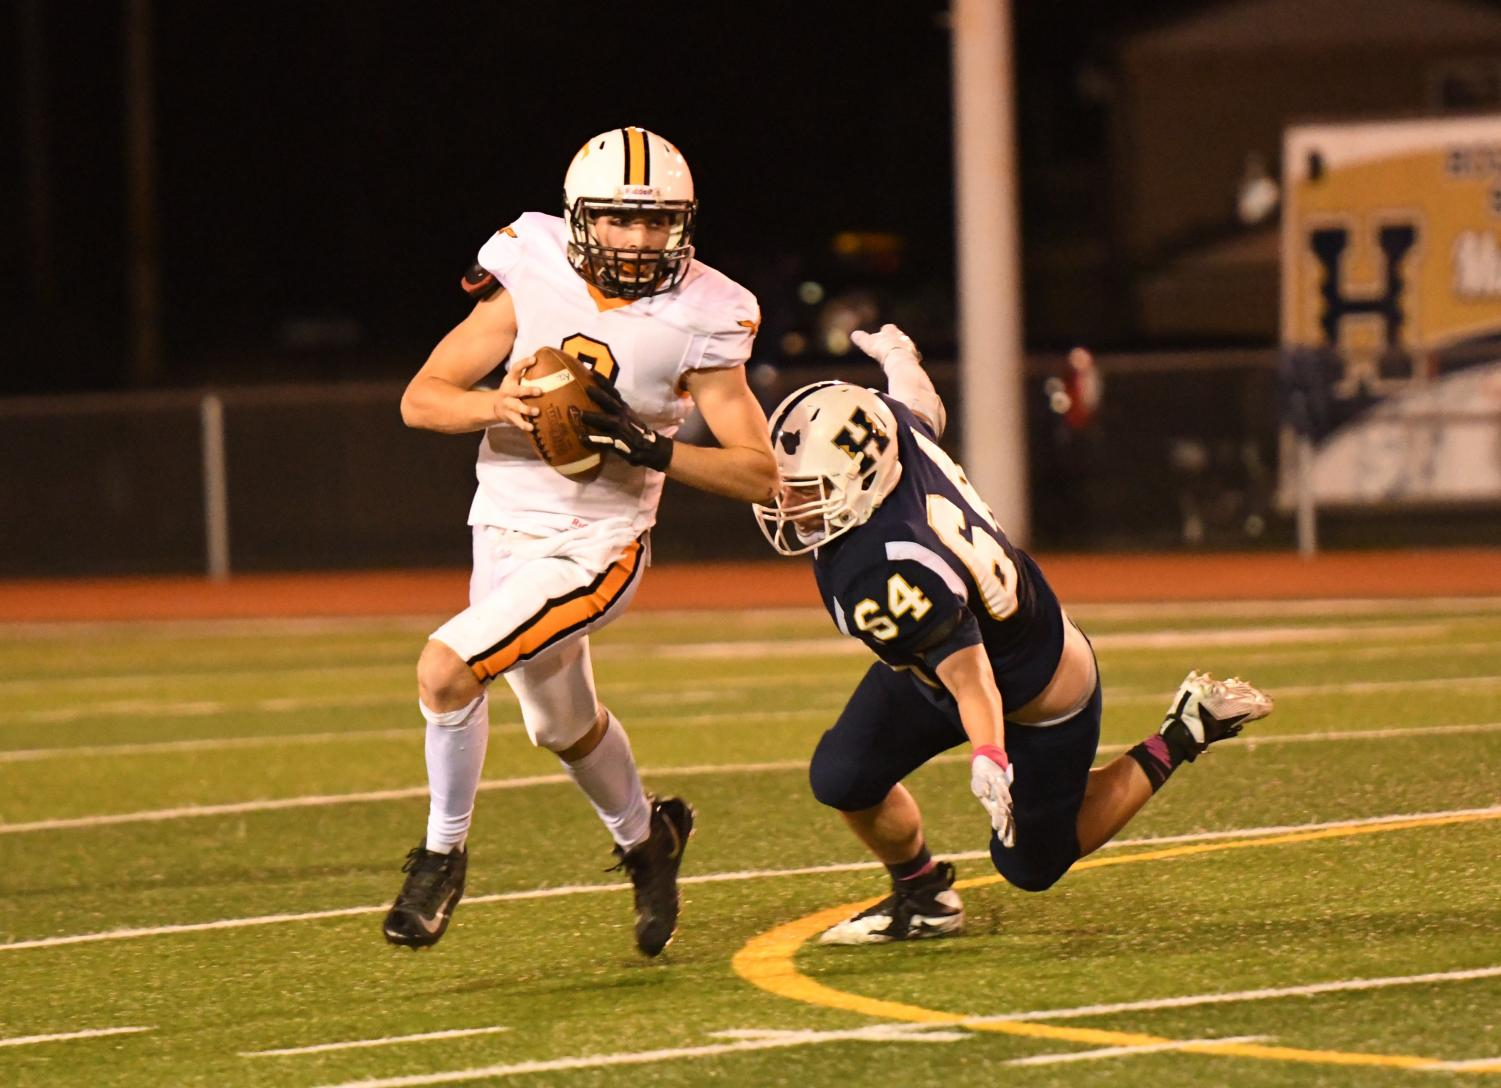 Quaterback Brandon Lucas led the Eagles on the ground and in the air with 116 yards rushing and 147 yards passing in a 41-13 loss to Hollidaysburg